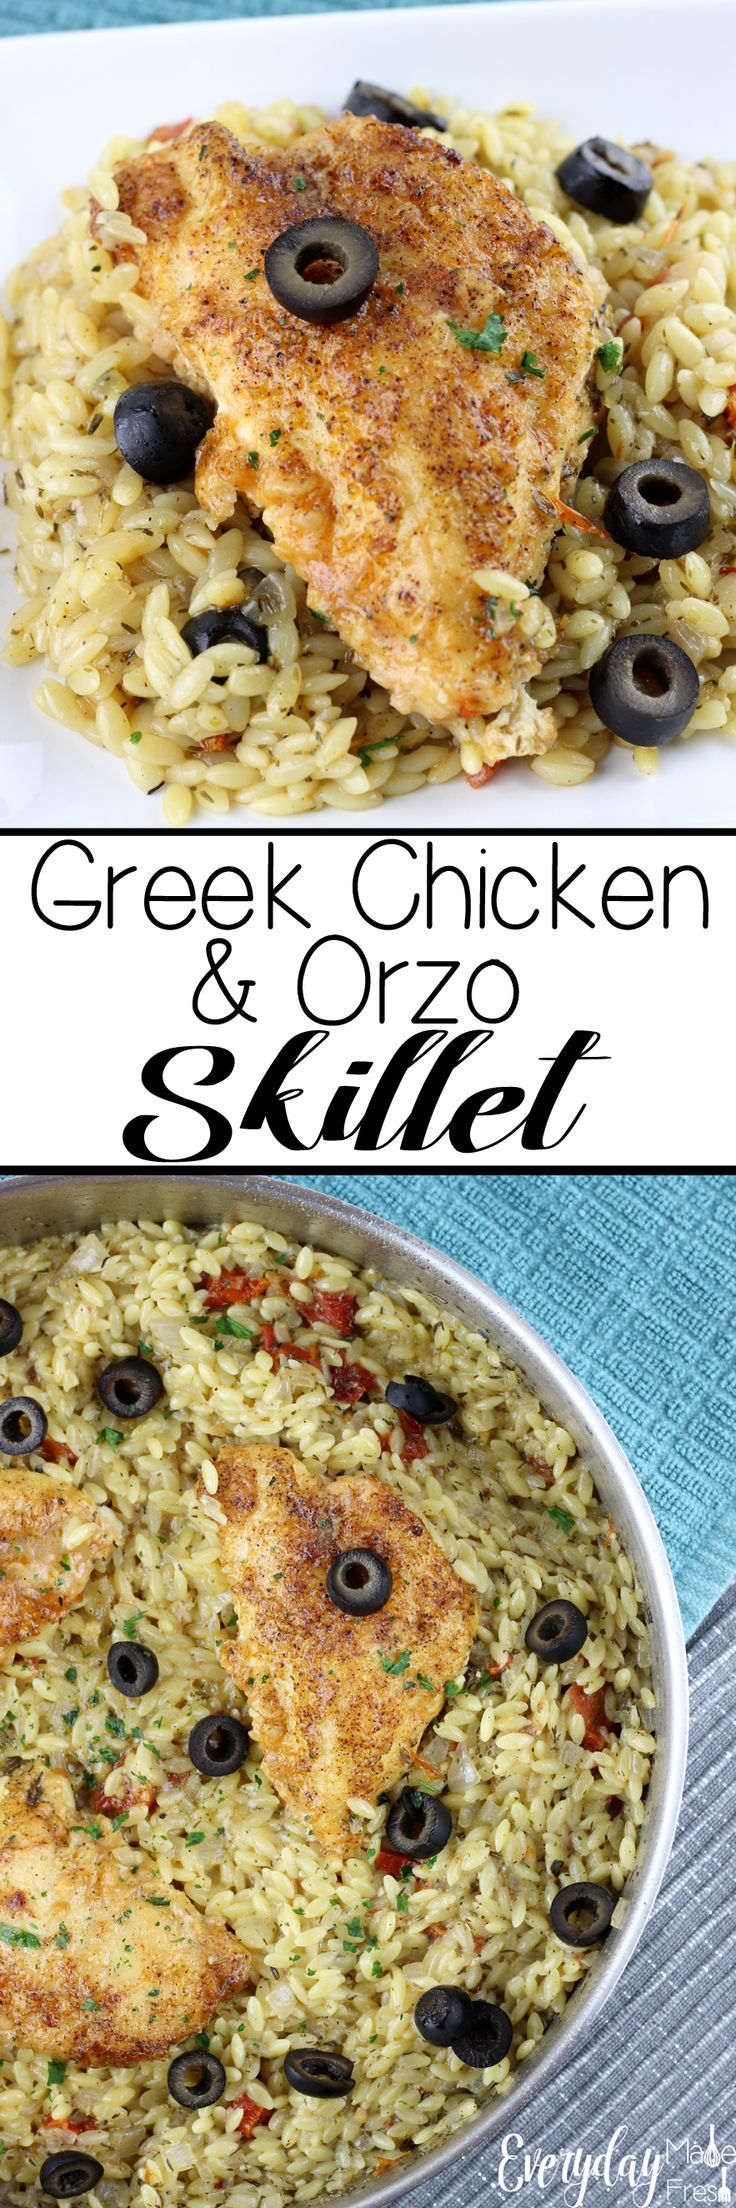 Weeknight meals just got a whole lot easier with this Greek Chicken & Orzo Skillet! Loaded with flavors and ready in less than 20 minutes. EverydayMadeFresh.com http://www.everydaymadefresh.com/greek-chicken-orzo-skillet/